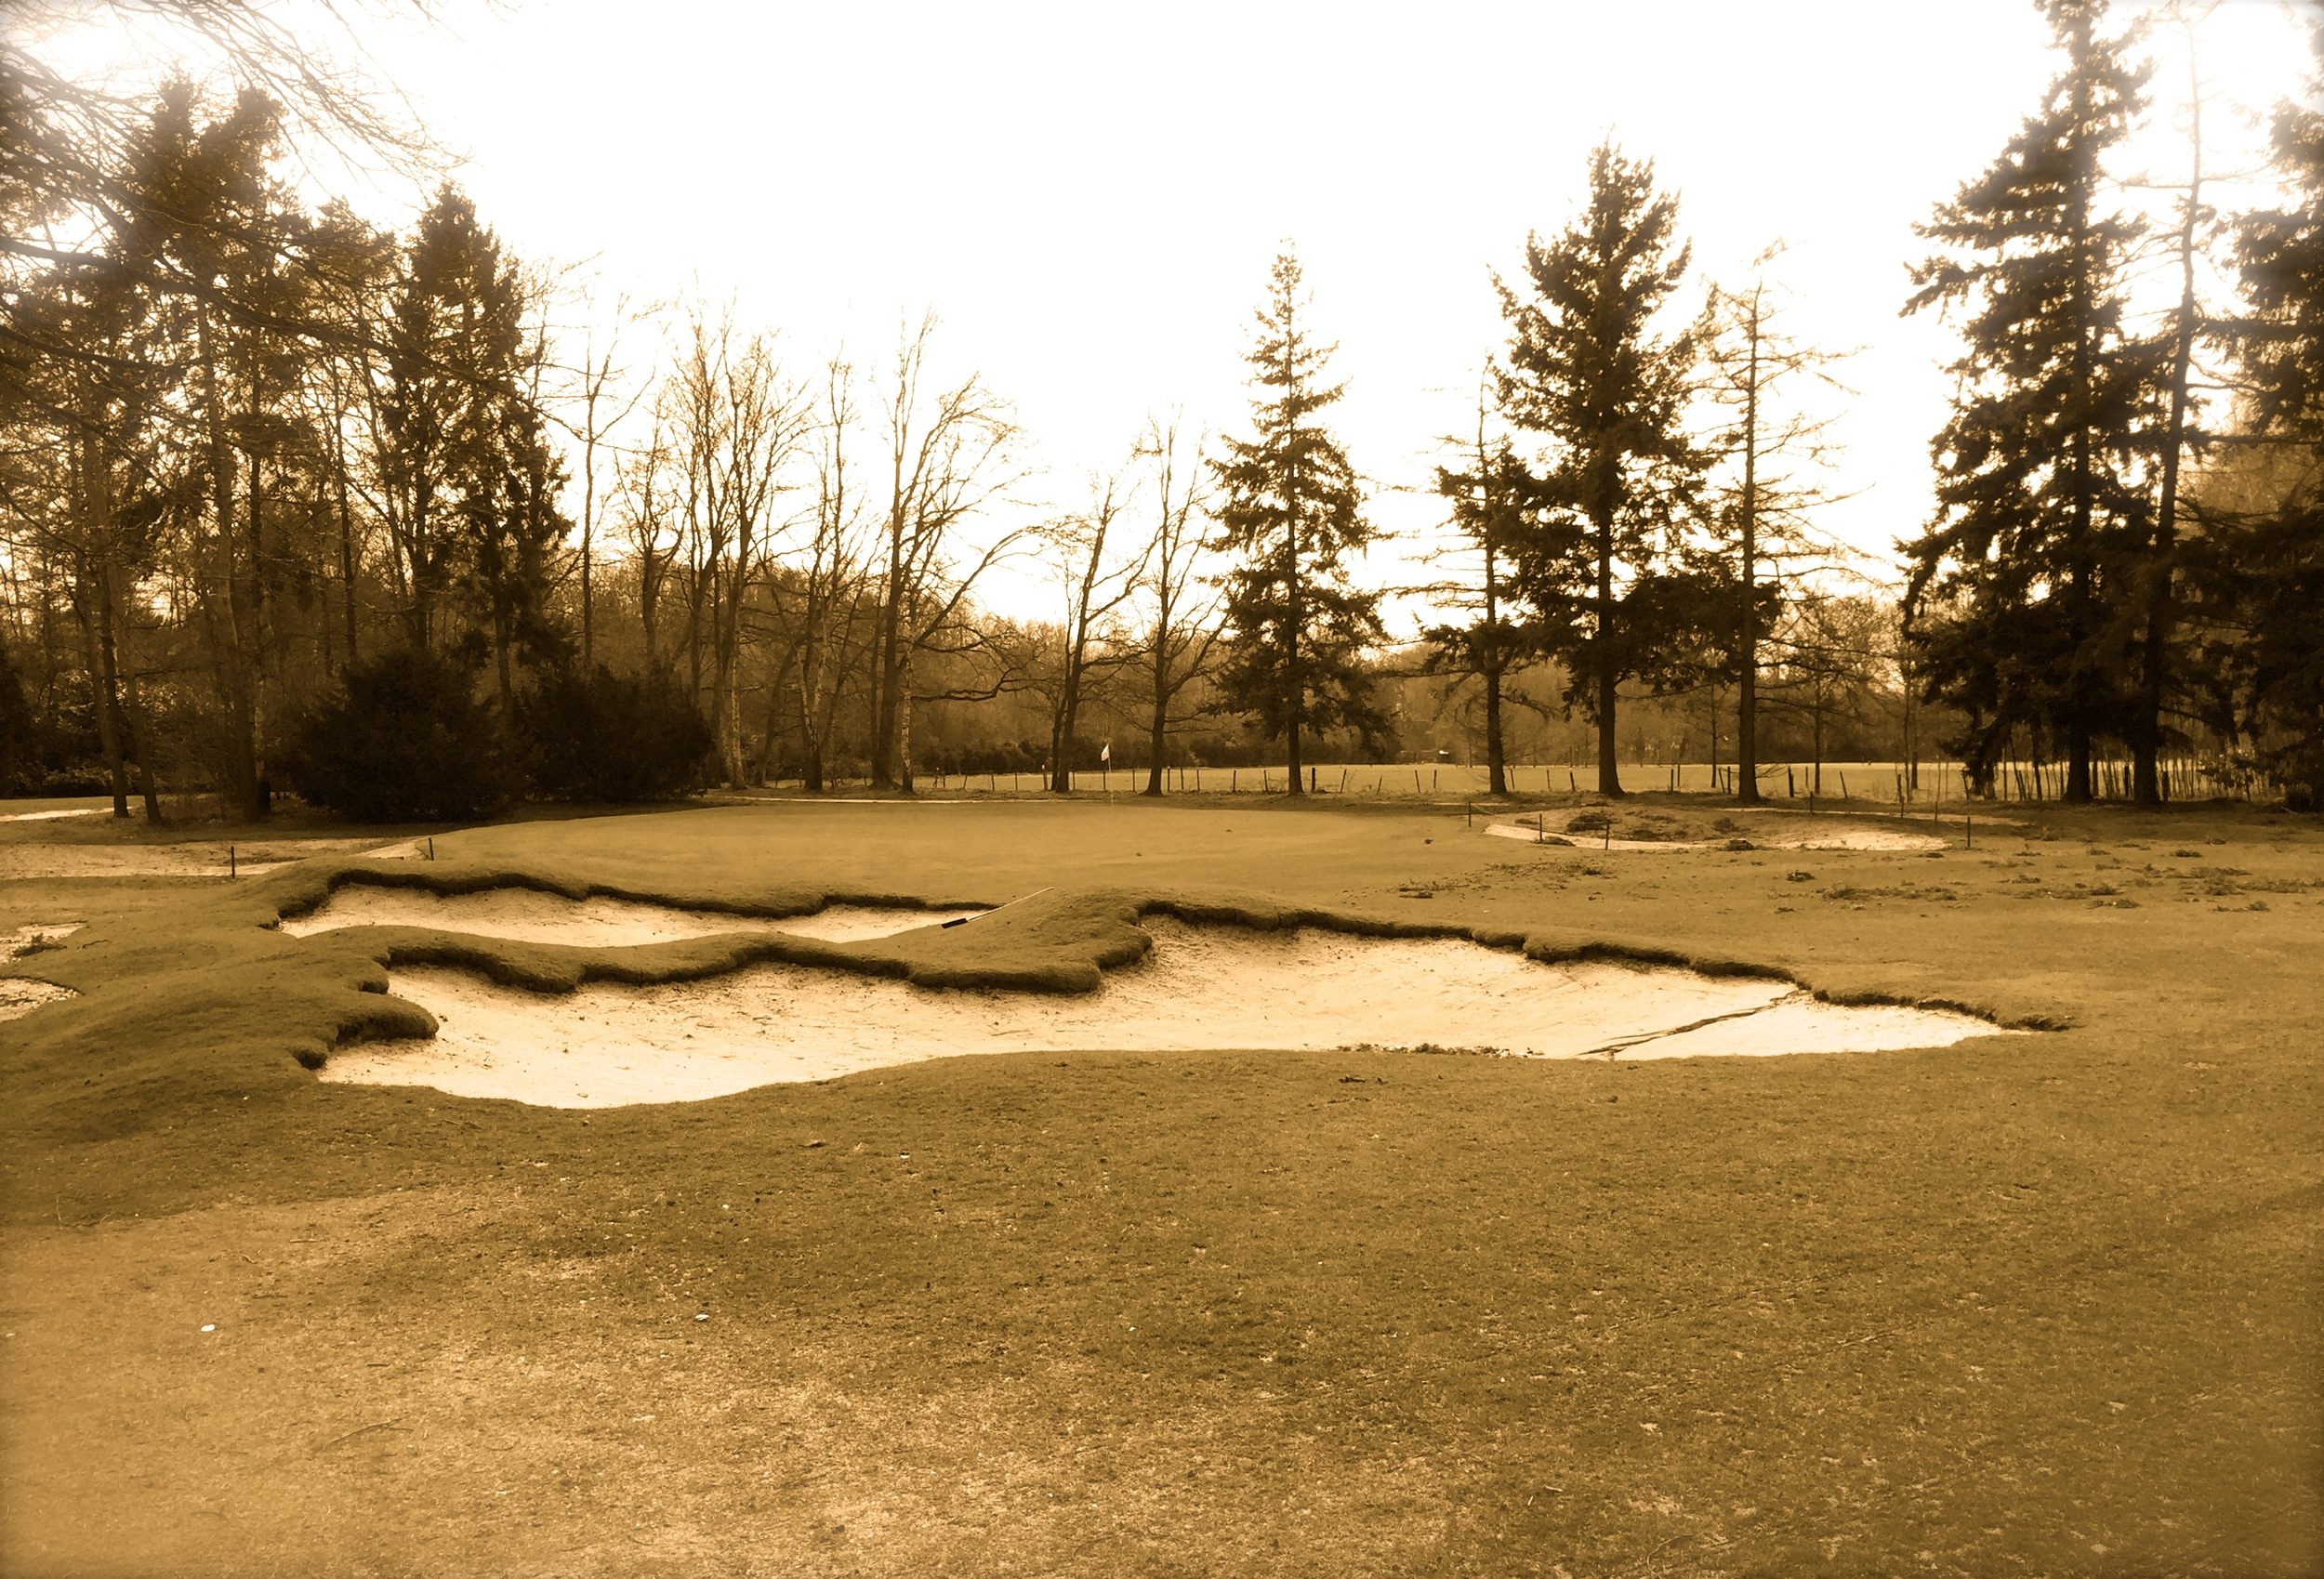 The 2nd hole bunkers close up with antique filtering for effect.  Another benefit of bunkers in close proximity is that the look and relation of the two constantly changes as one moves closer and around them.